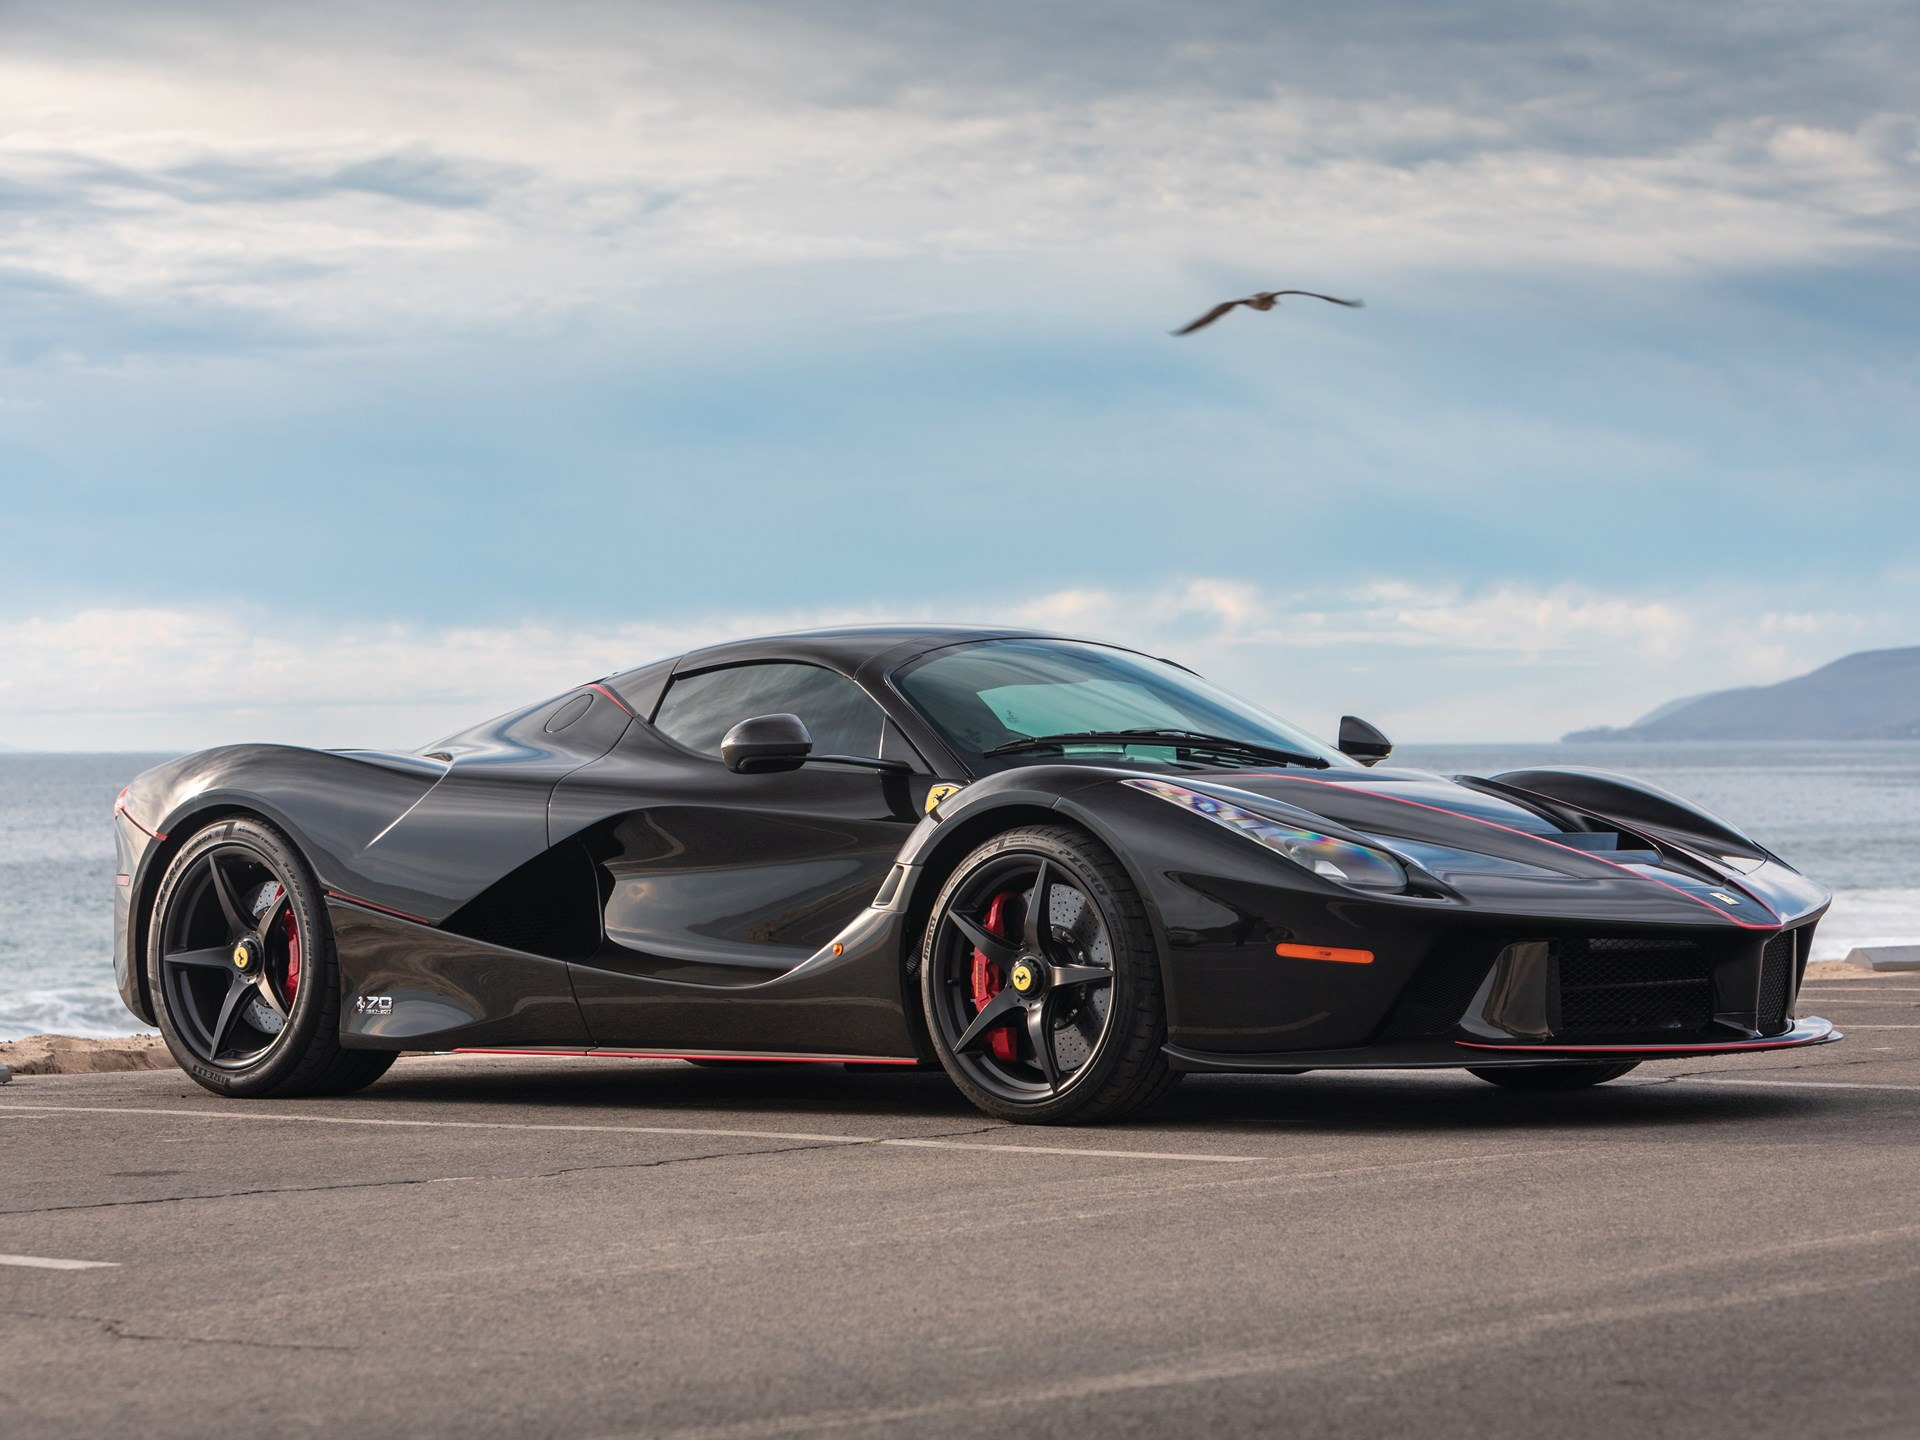 This 1500 Mile Ferrari Laferrari Aperta Could Fetch 85